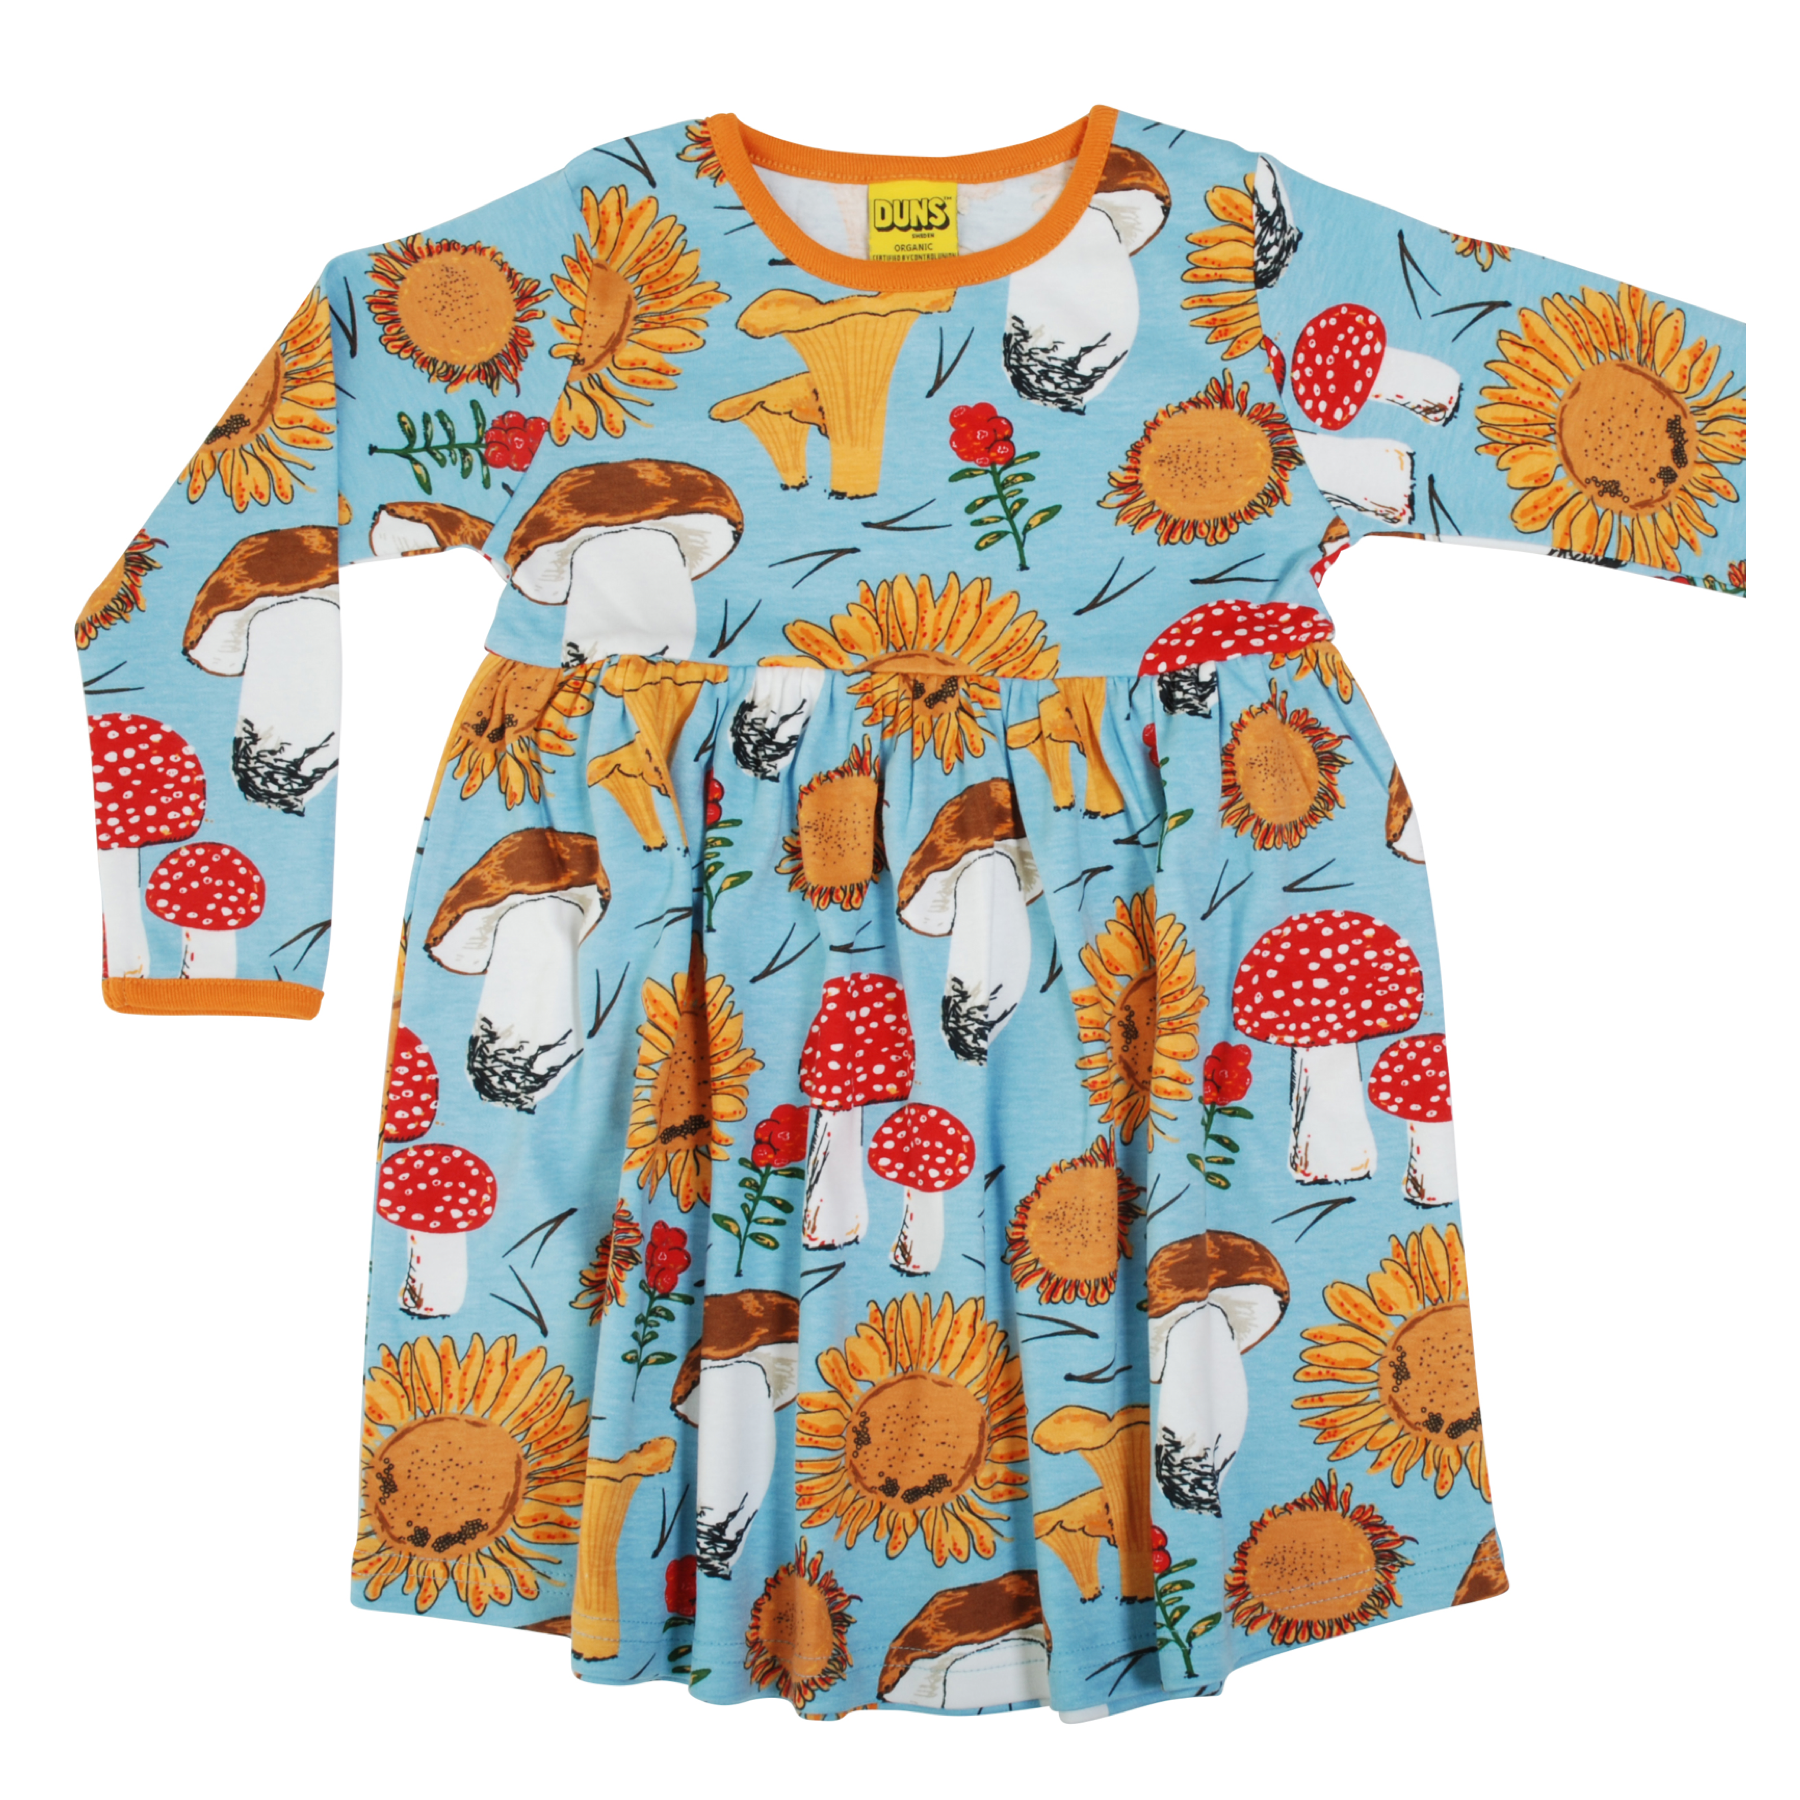 DUNS Sweden Dress Twirly LS Sunflowers & Mushrooms Sky Blue,little-tiger-togs.